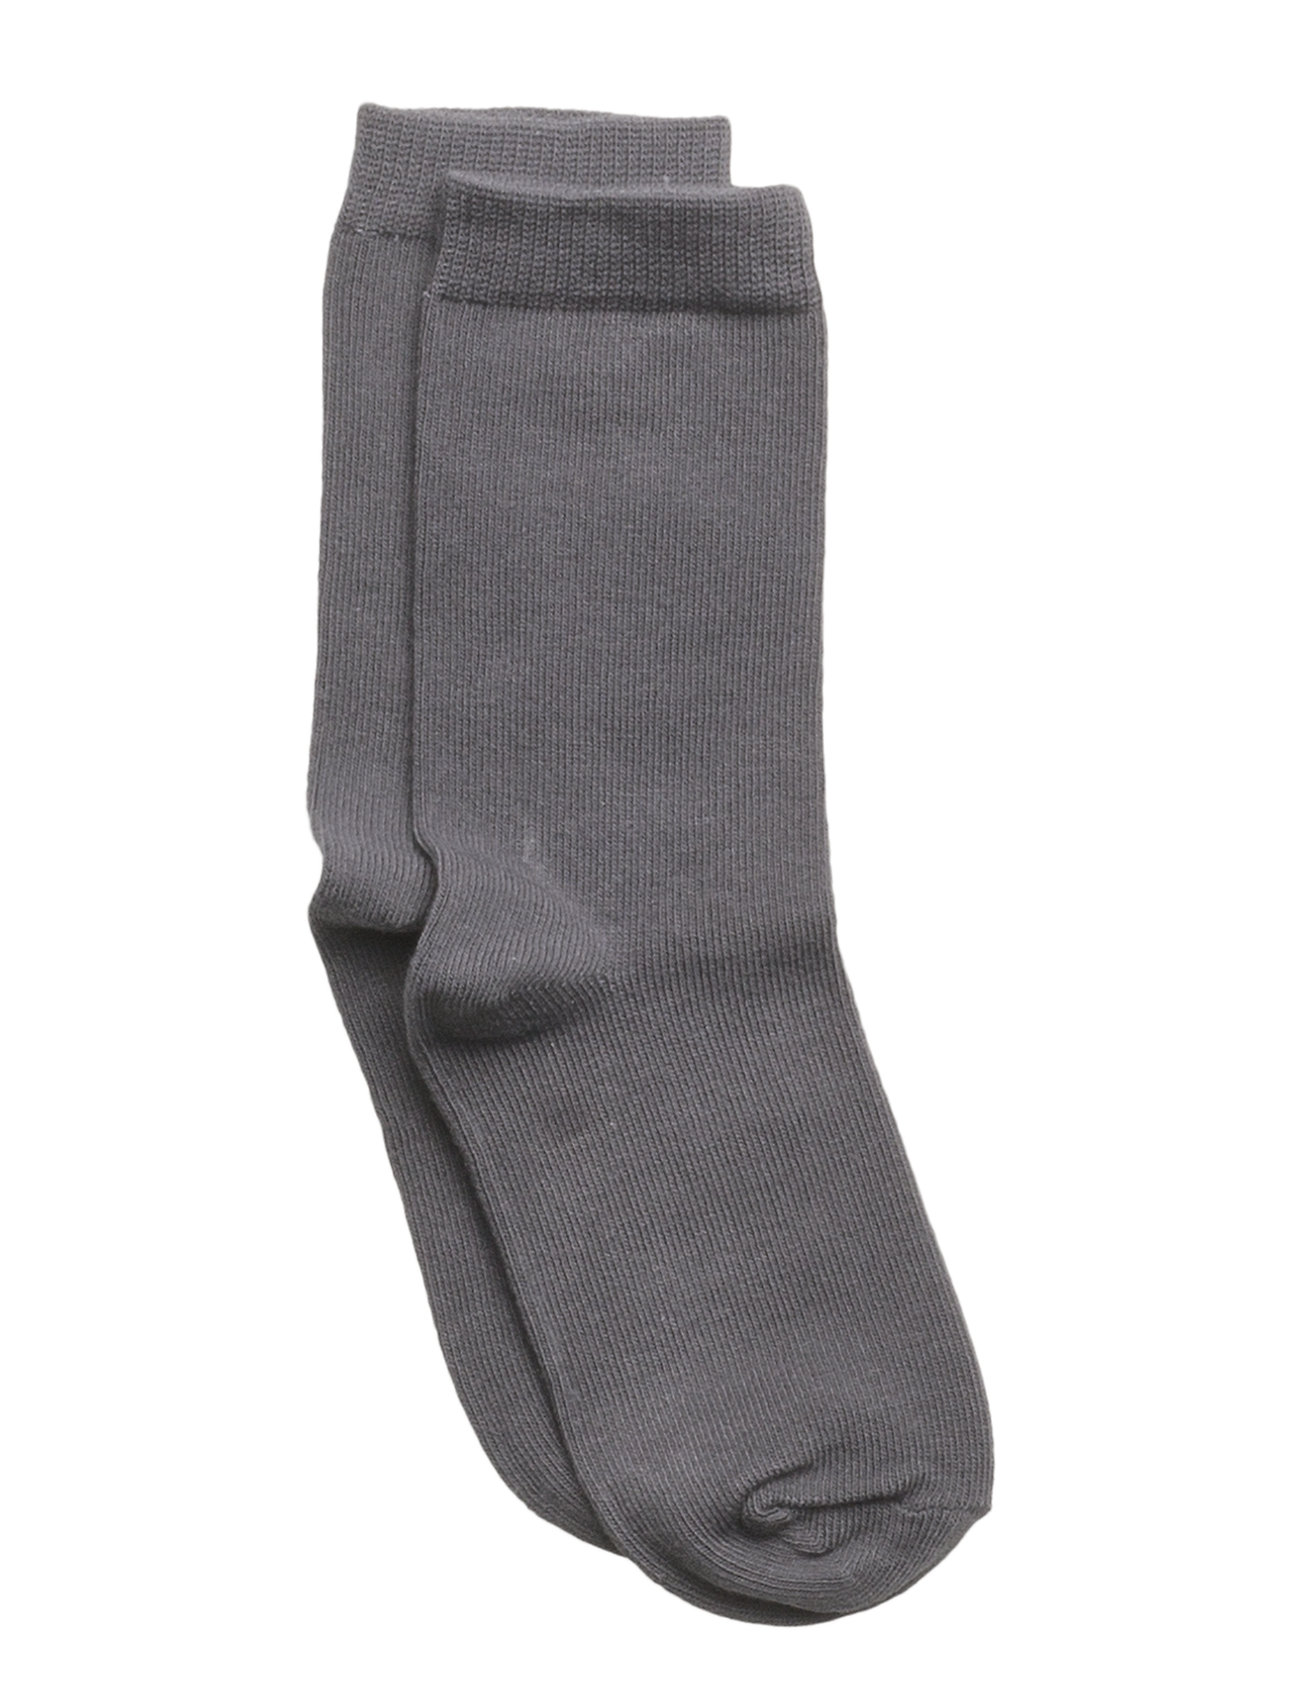 Melton Sock , plain colour - 155/GRAPHITE GREY